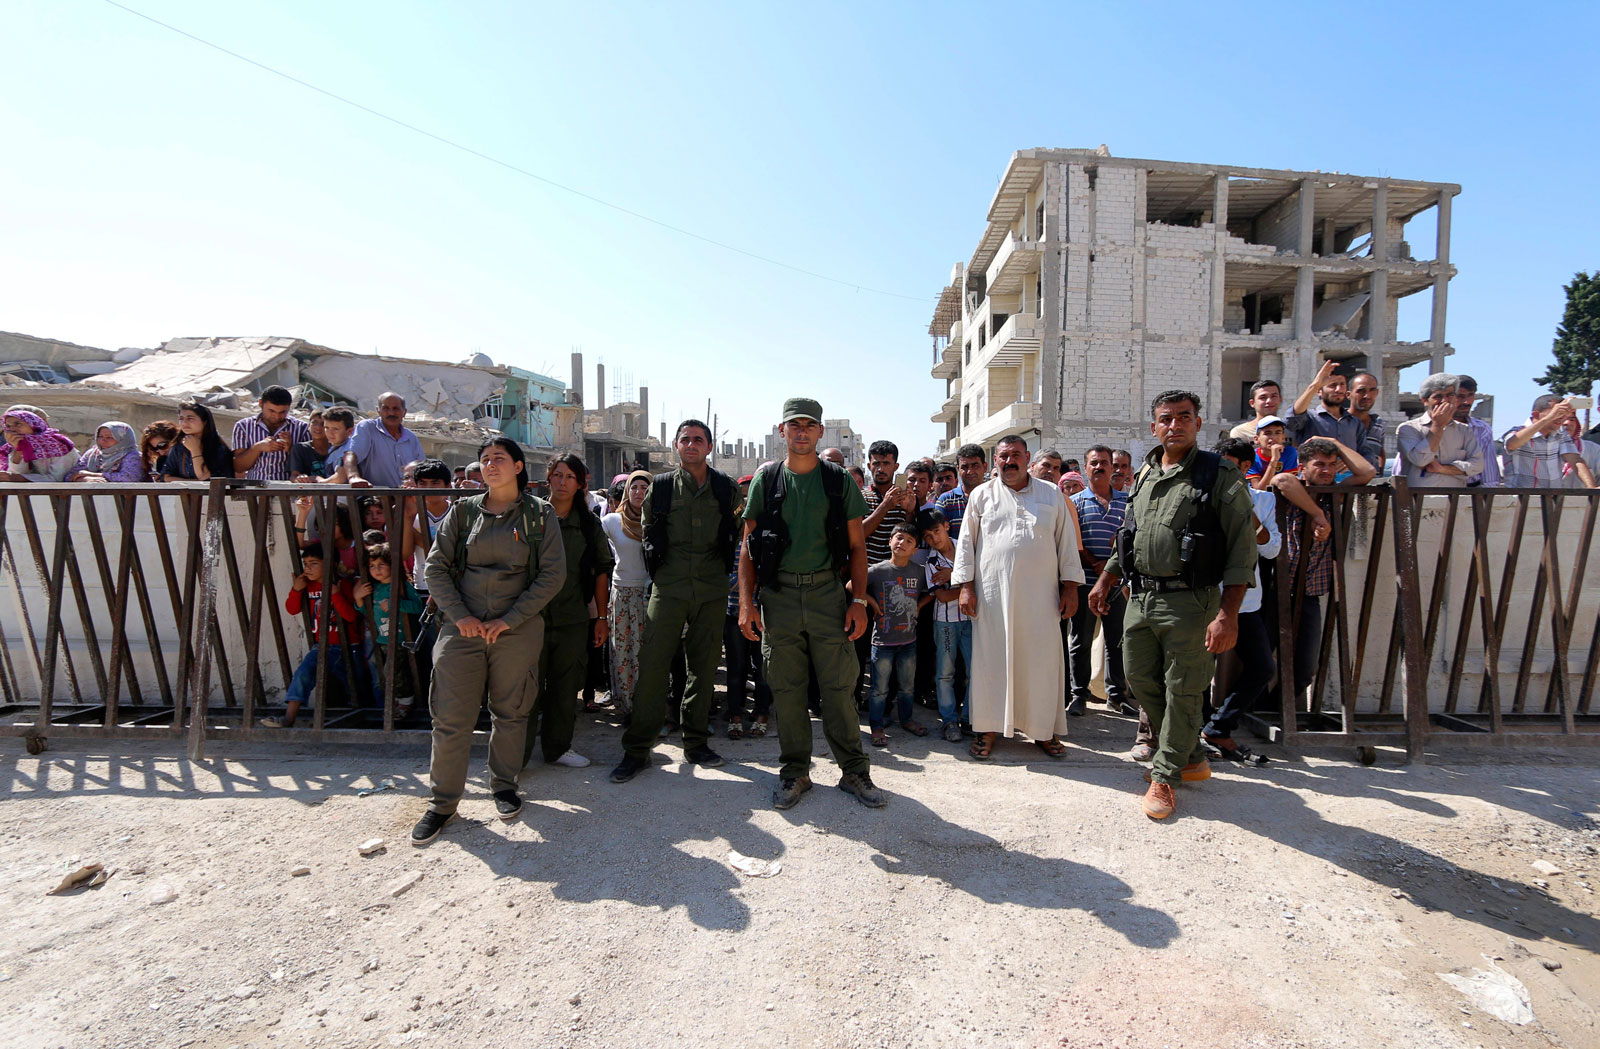 Kurdish Security Forces (Asayish) secures a road as residents watch ambulances carrying the bodies of the two Syrian toddlers and their mother, who drowned while trying to reach Greece, at the border town of Kobani, Syria, September 4, 2015